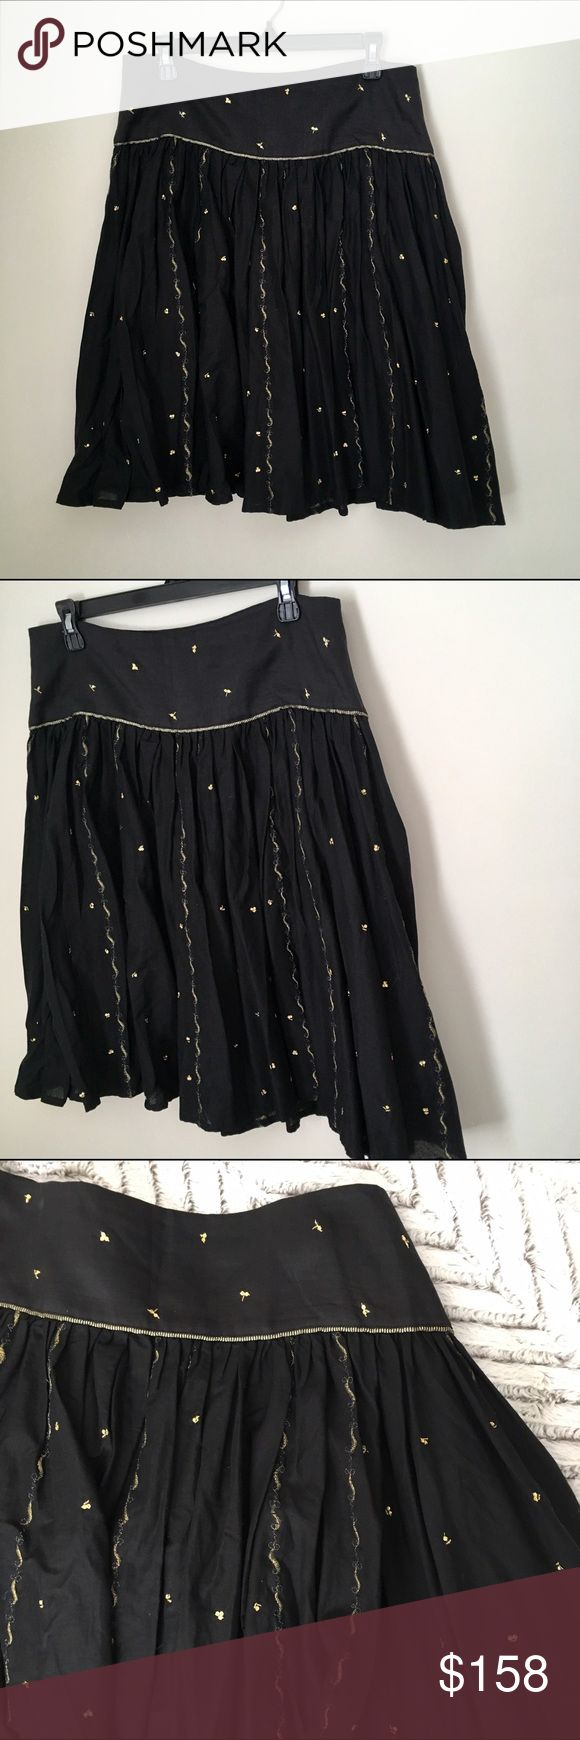 NWT French Connection Black & Gold Skirt French Connection black cotton full above-the-knee skirt with gold sequins and embroidery. Brand new with Tags! Size 8. Includes extra sequins in case any fall off. French Connection Skirts A-Line or Full